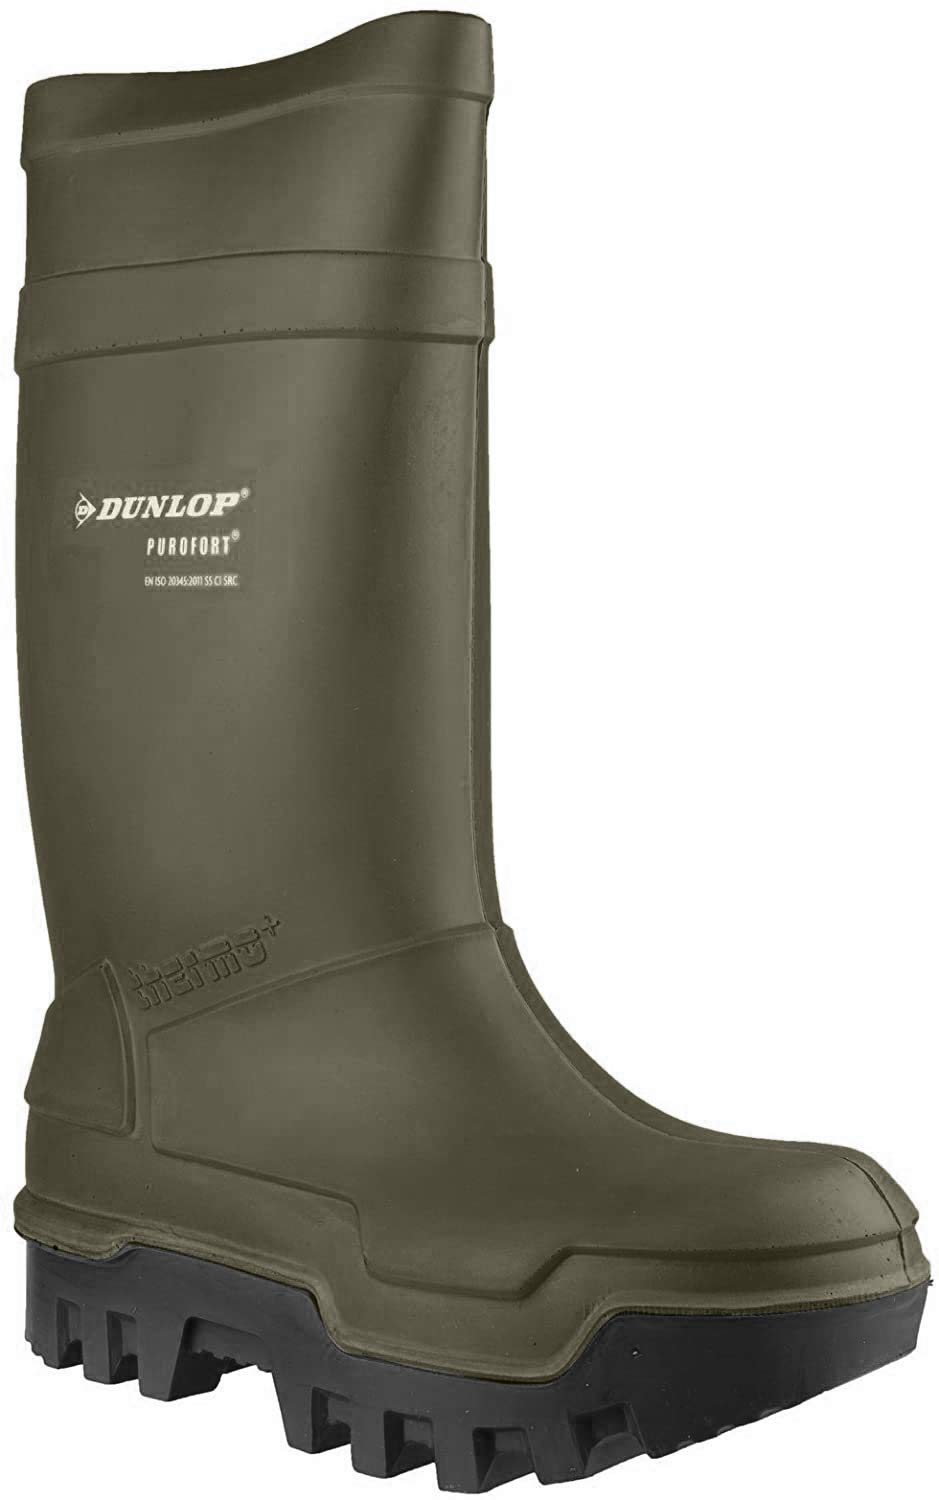 Dunlop PUROFORT THERMO+C662933 Mens S5 CI SRC Safety Wellington Boots Green